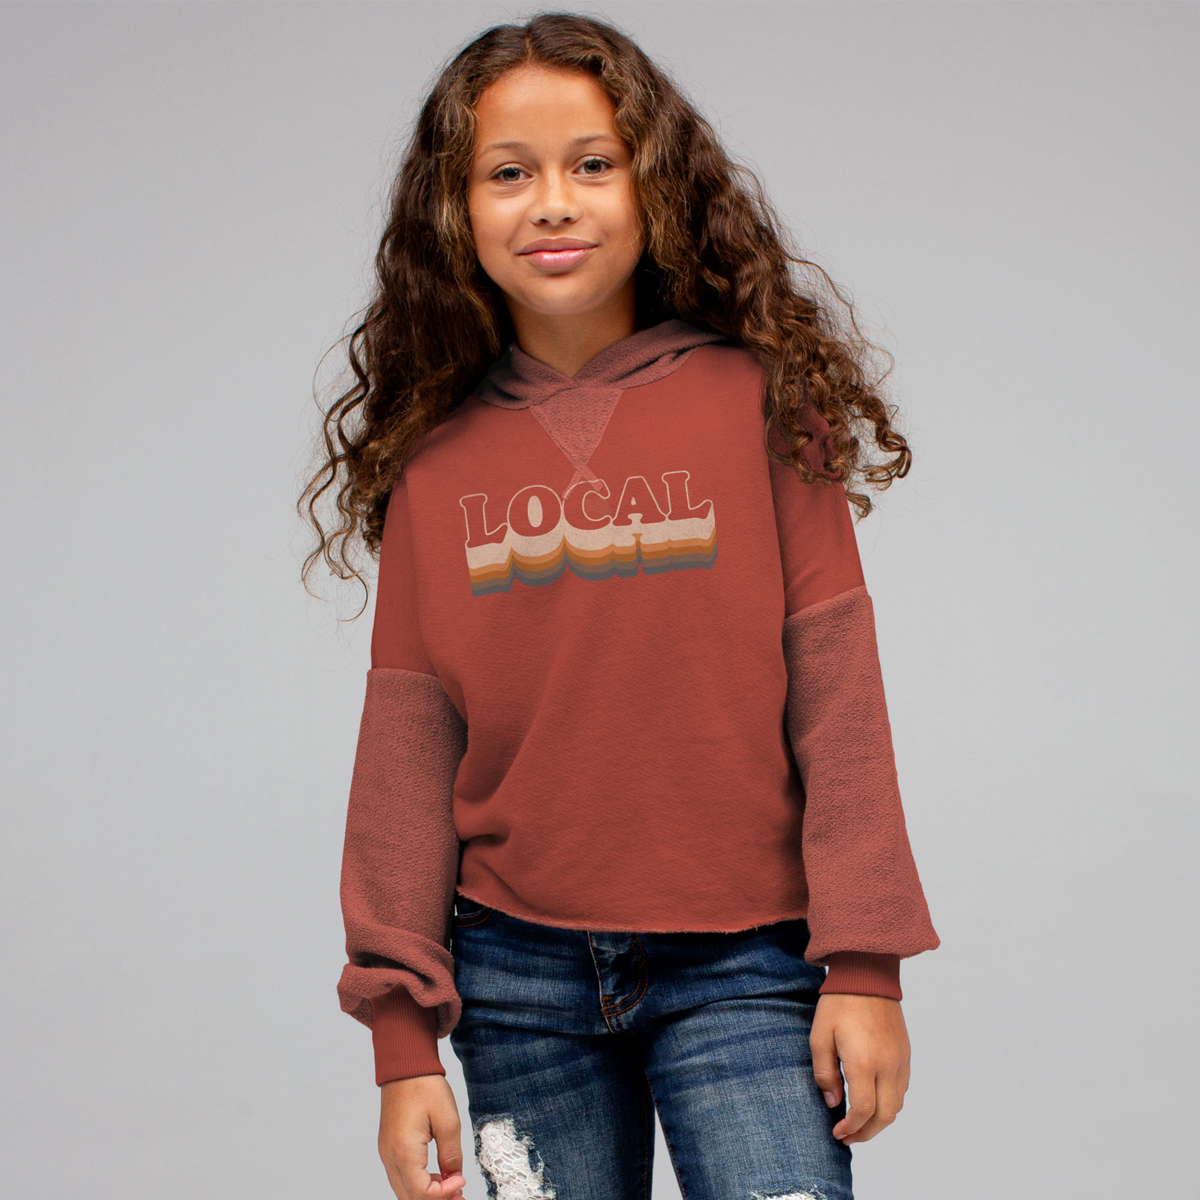 Junk Food Brick Red Hooded Sweatshirt with Local Print on girl